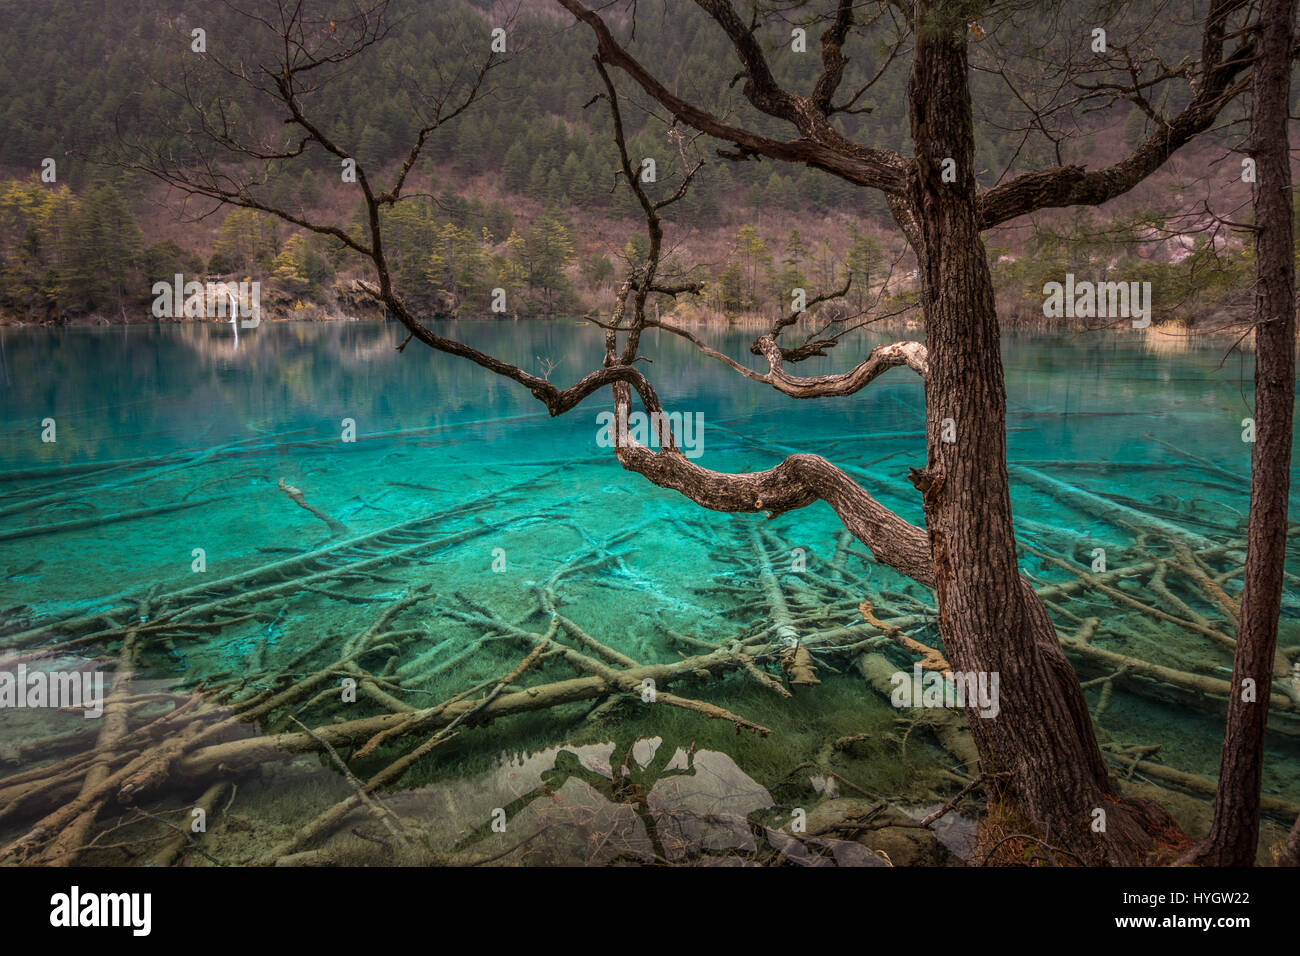 Home to a small population of endangered giant panda & snub-nosed monkey, the colourful Jiuzhaigou National Park, Stock Photo